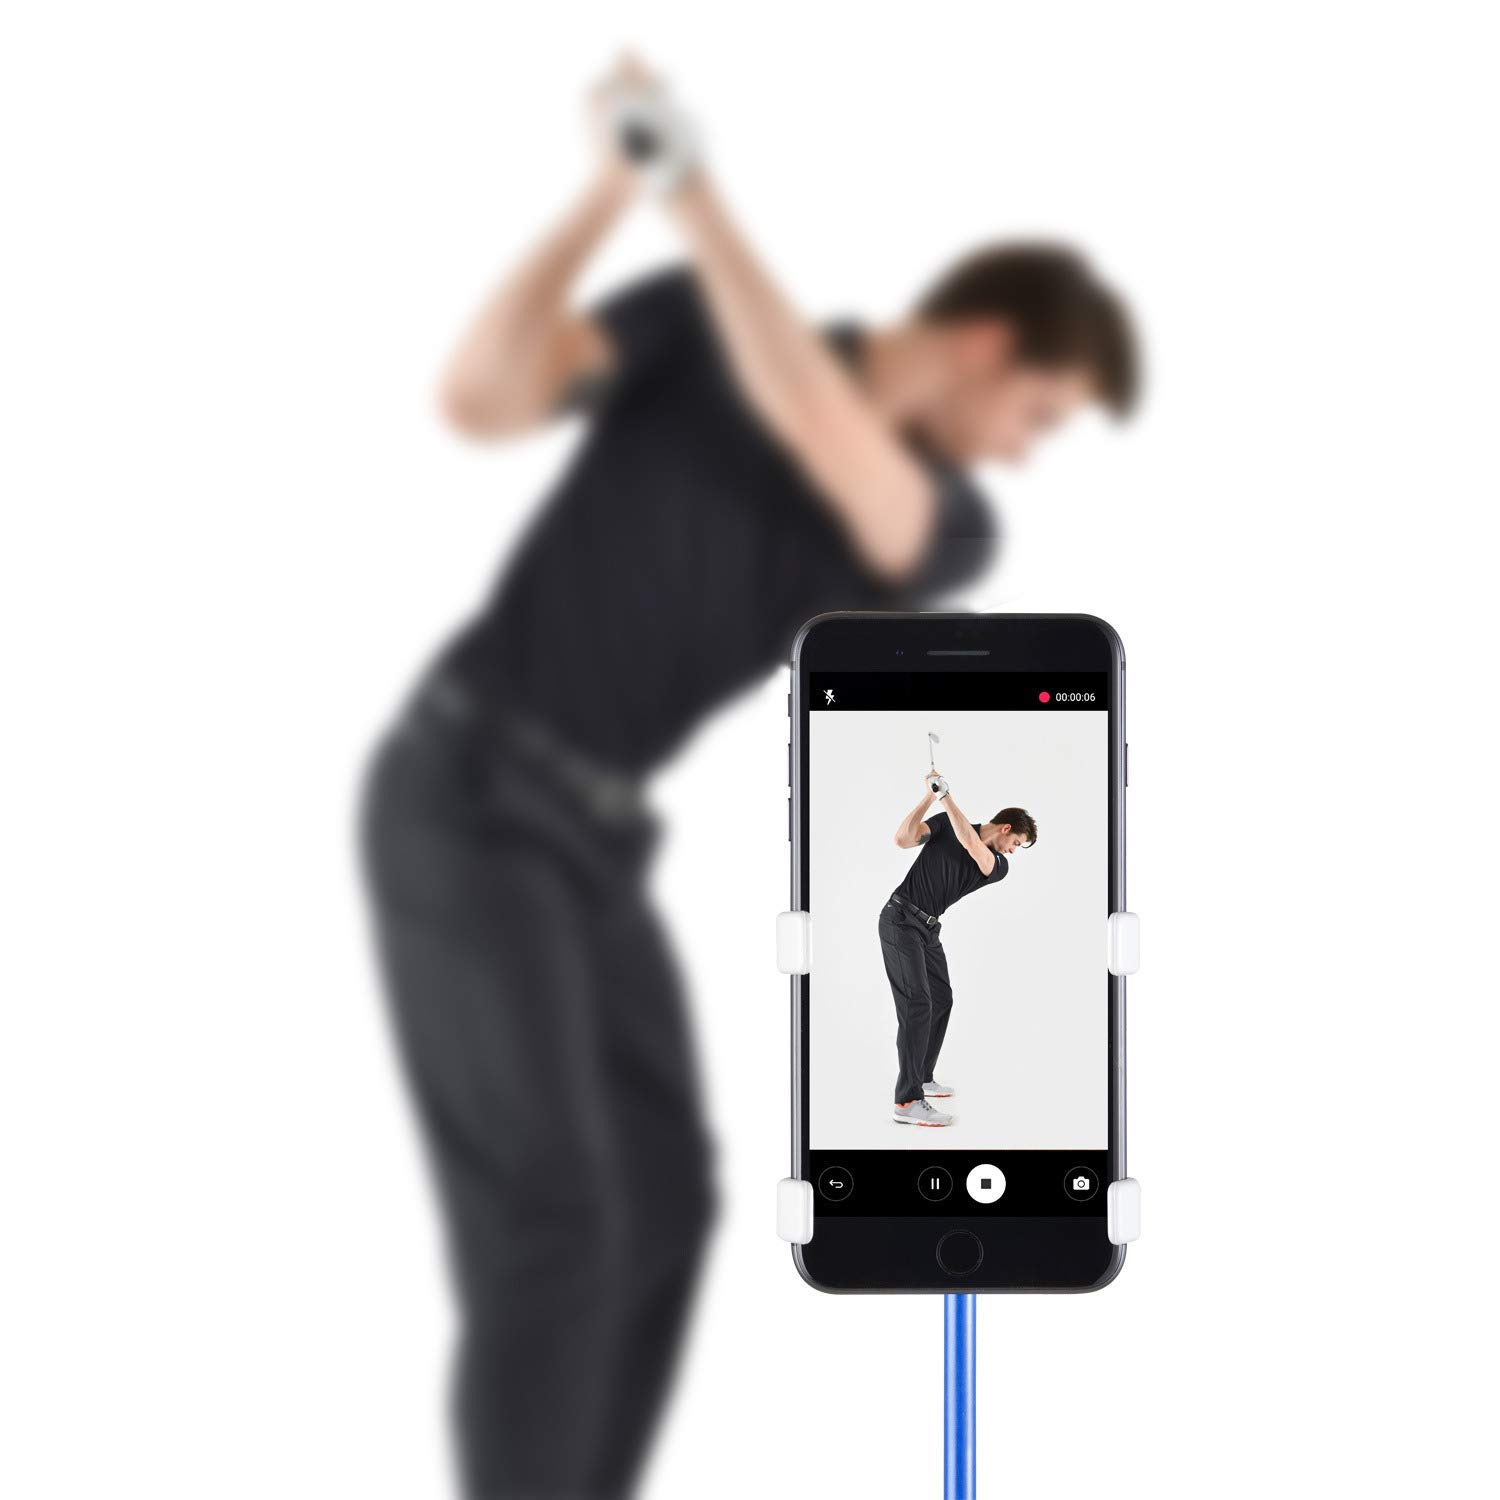 SelfieGolf Record Golf Swing - Cell Phone Clip Holder and Training Aid - Golf Accessories | Winner of The PGA Best Product | Works with Any Smart Phone, Quick Set Up (Snow White) by Selfie Golf